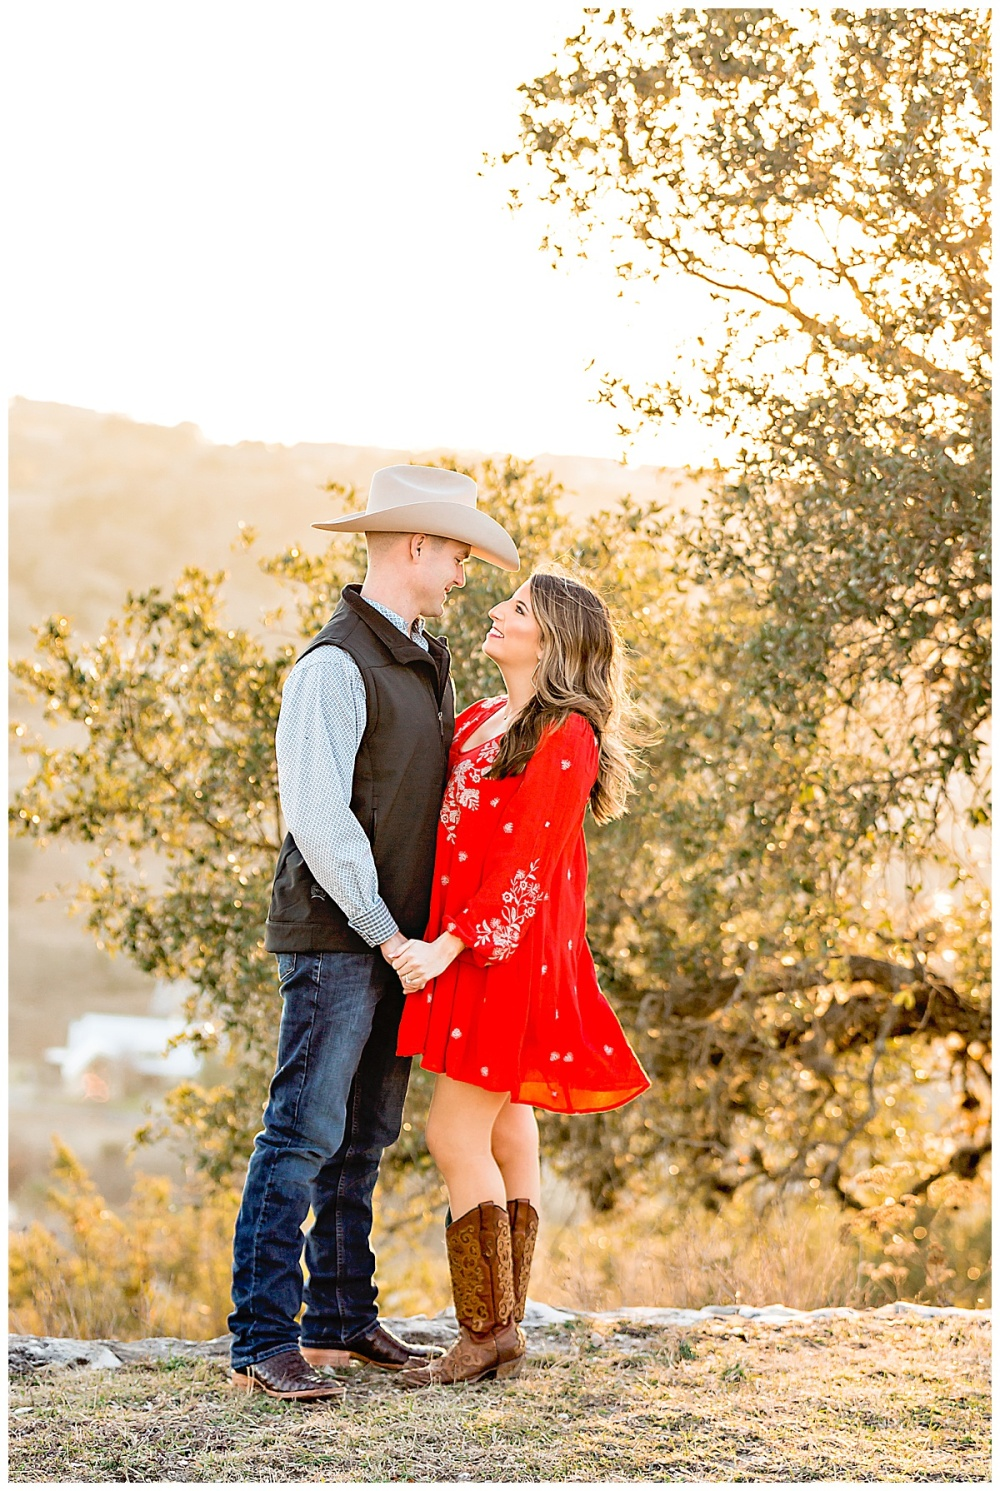 South-Texas-Wedding-Photographer-Engagement-Photos-Happy-H-Ranch-Comfort-Texas-Sunset-Couples-Carly-Barton-Photography-Justin-Erica_0015.jpg